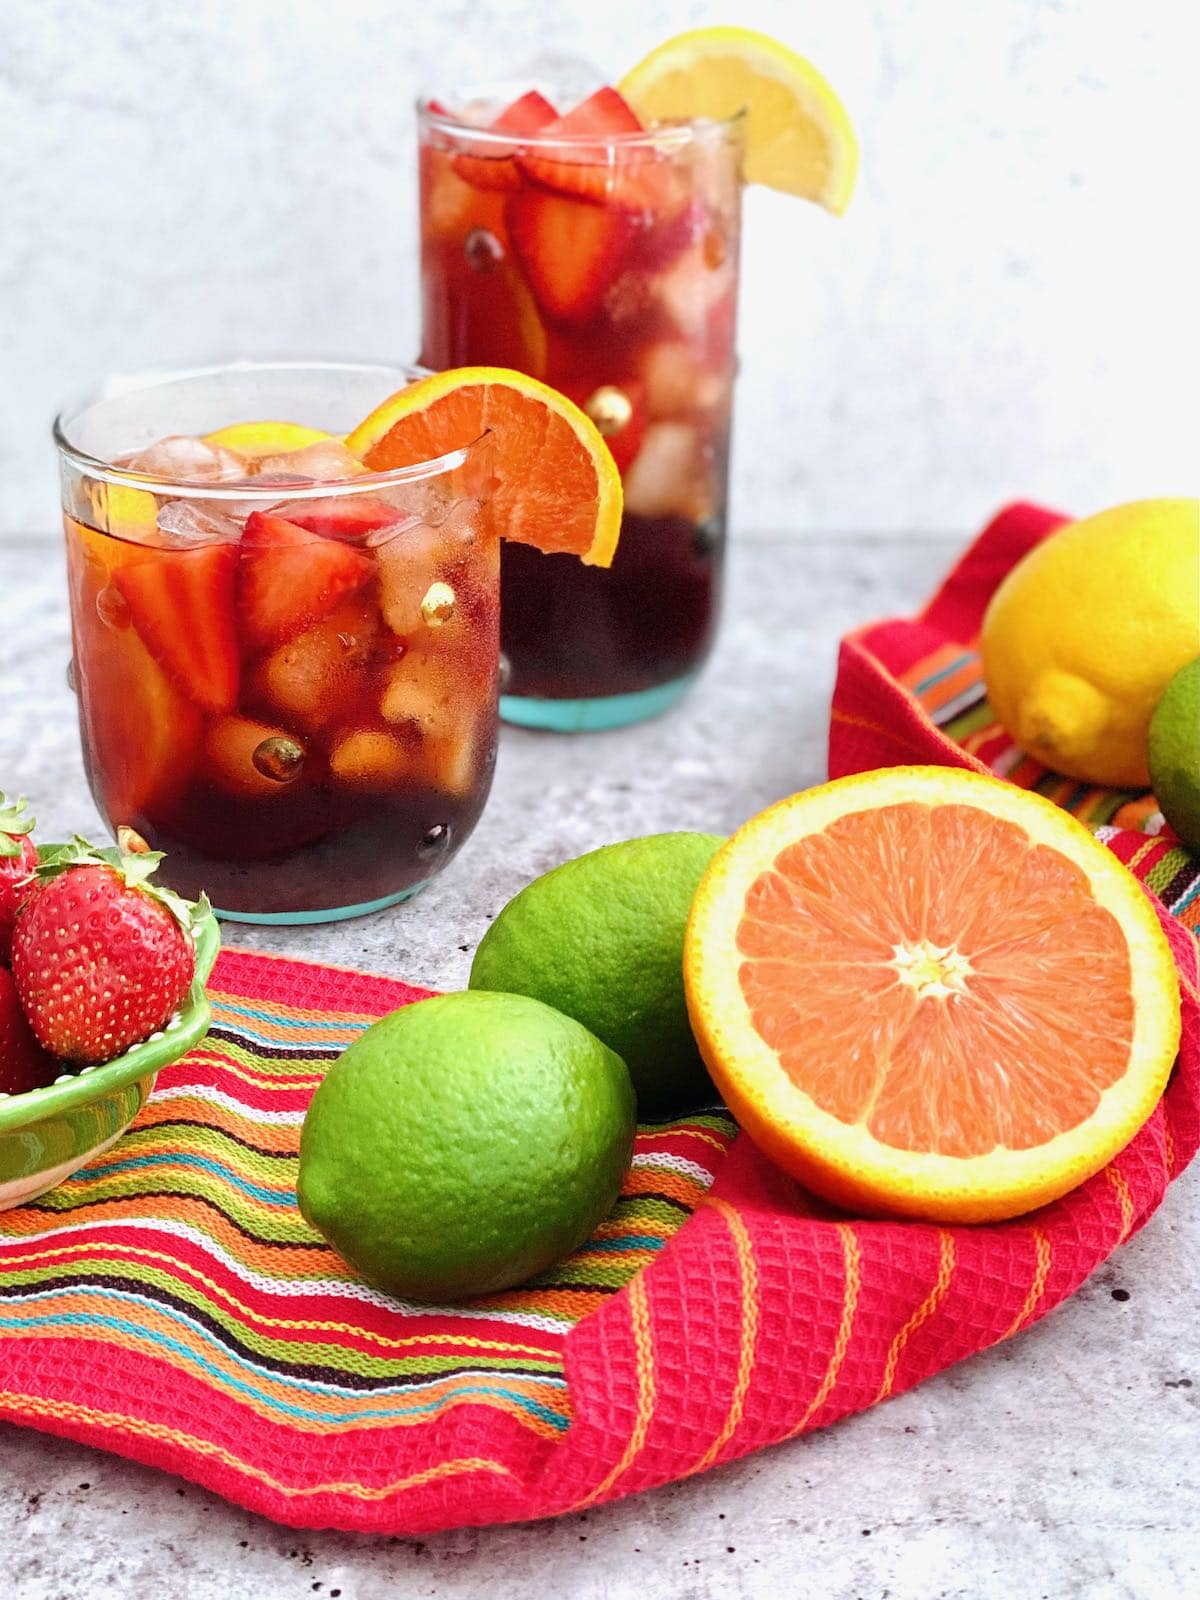 two glasses of sangria with oranges, limes and lemons in the foreground.